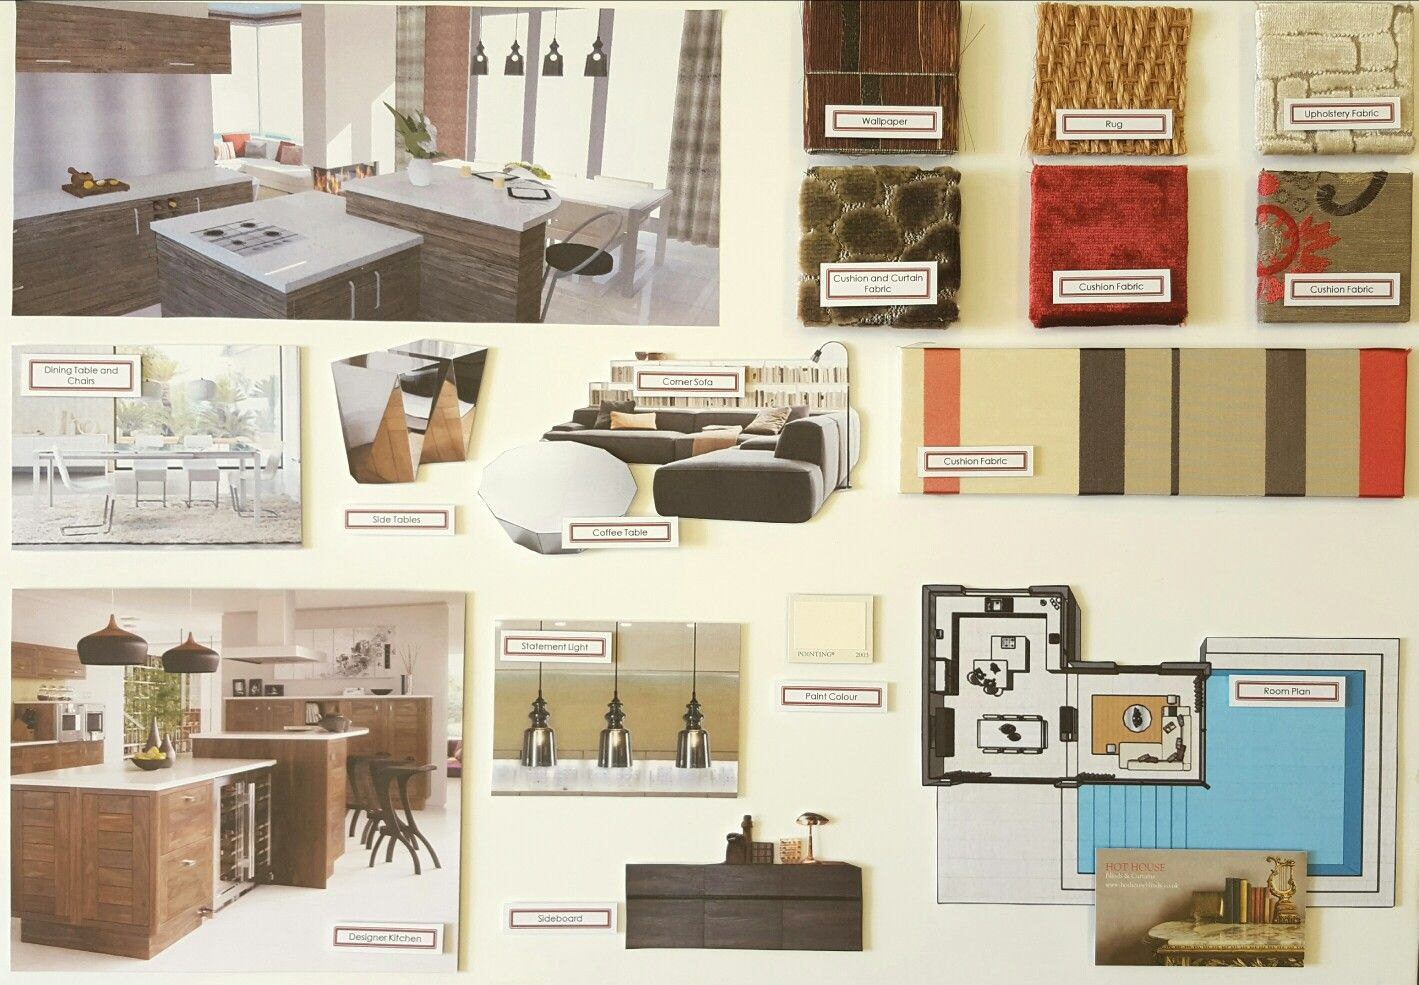 Design By Amie Gurney For Hot House And Kreative Kitchens